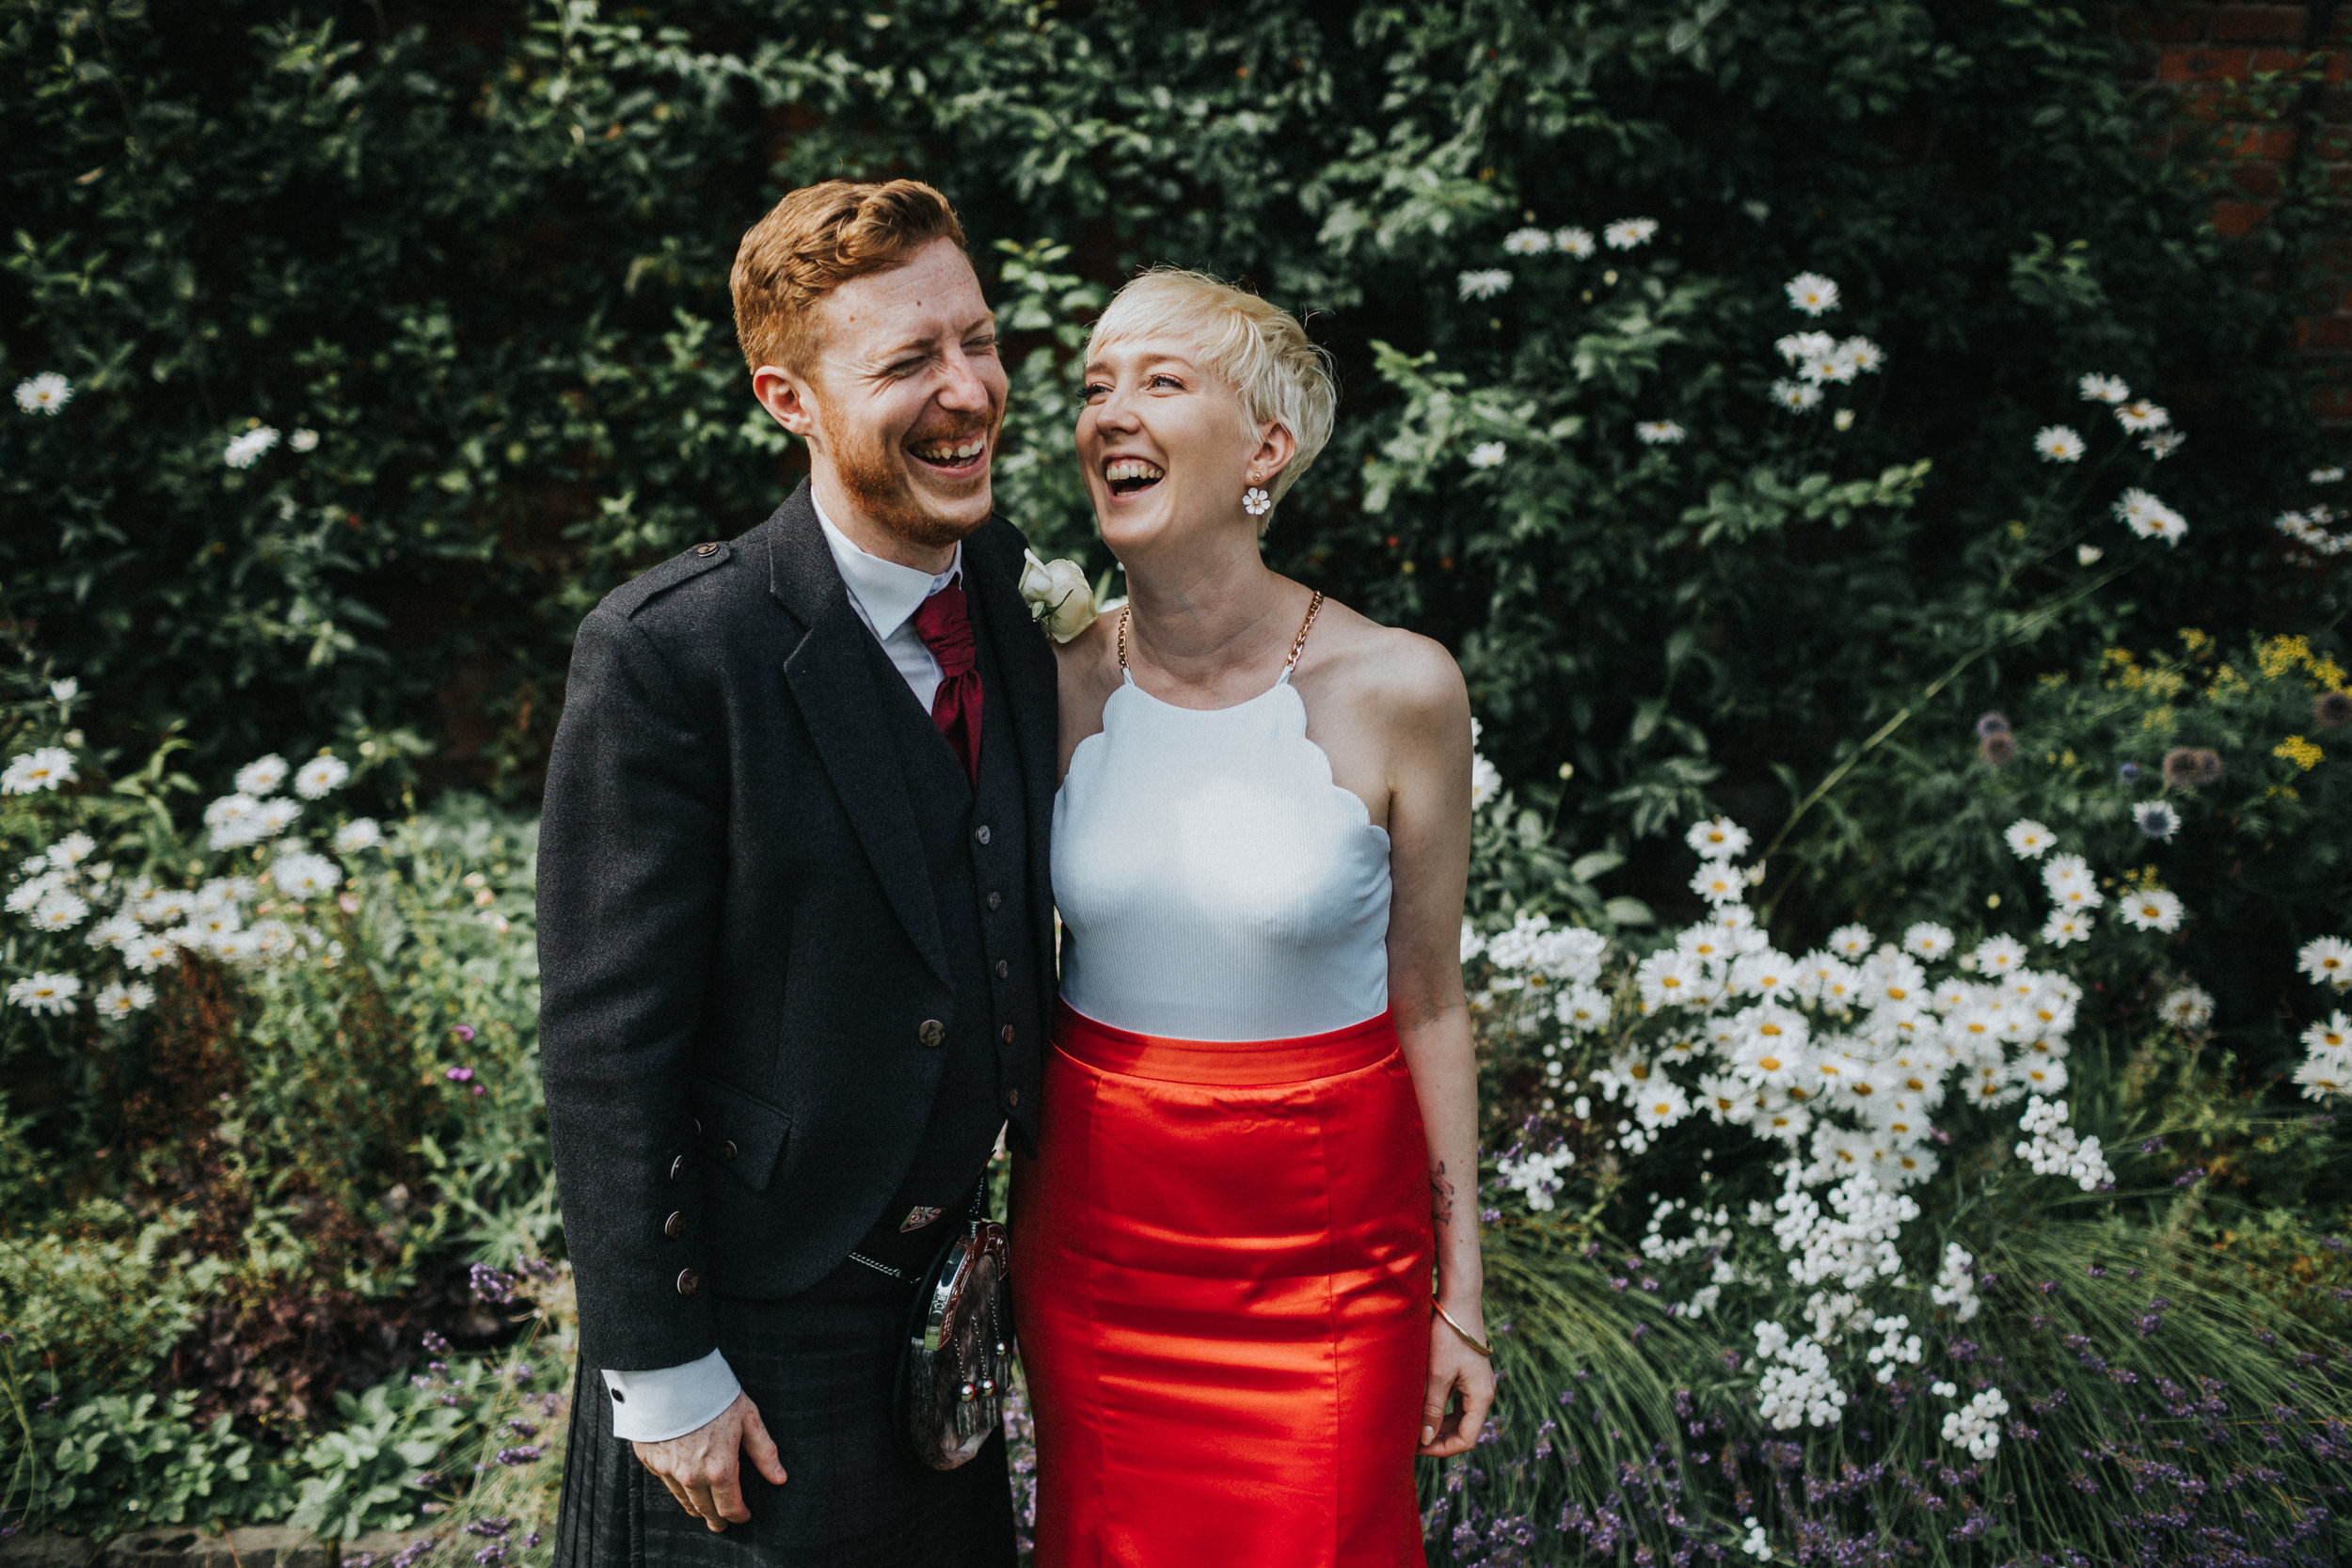 Untraditional bride and groom stand laughing on their chilled out wedding celebration.